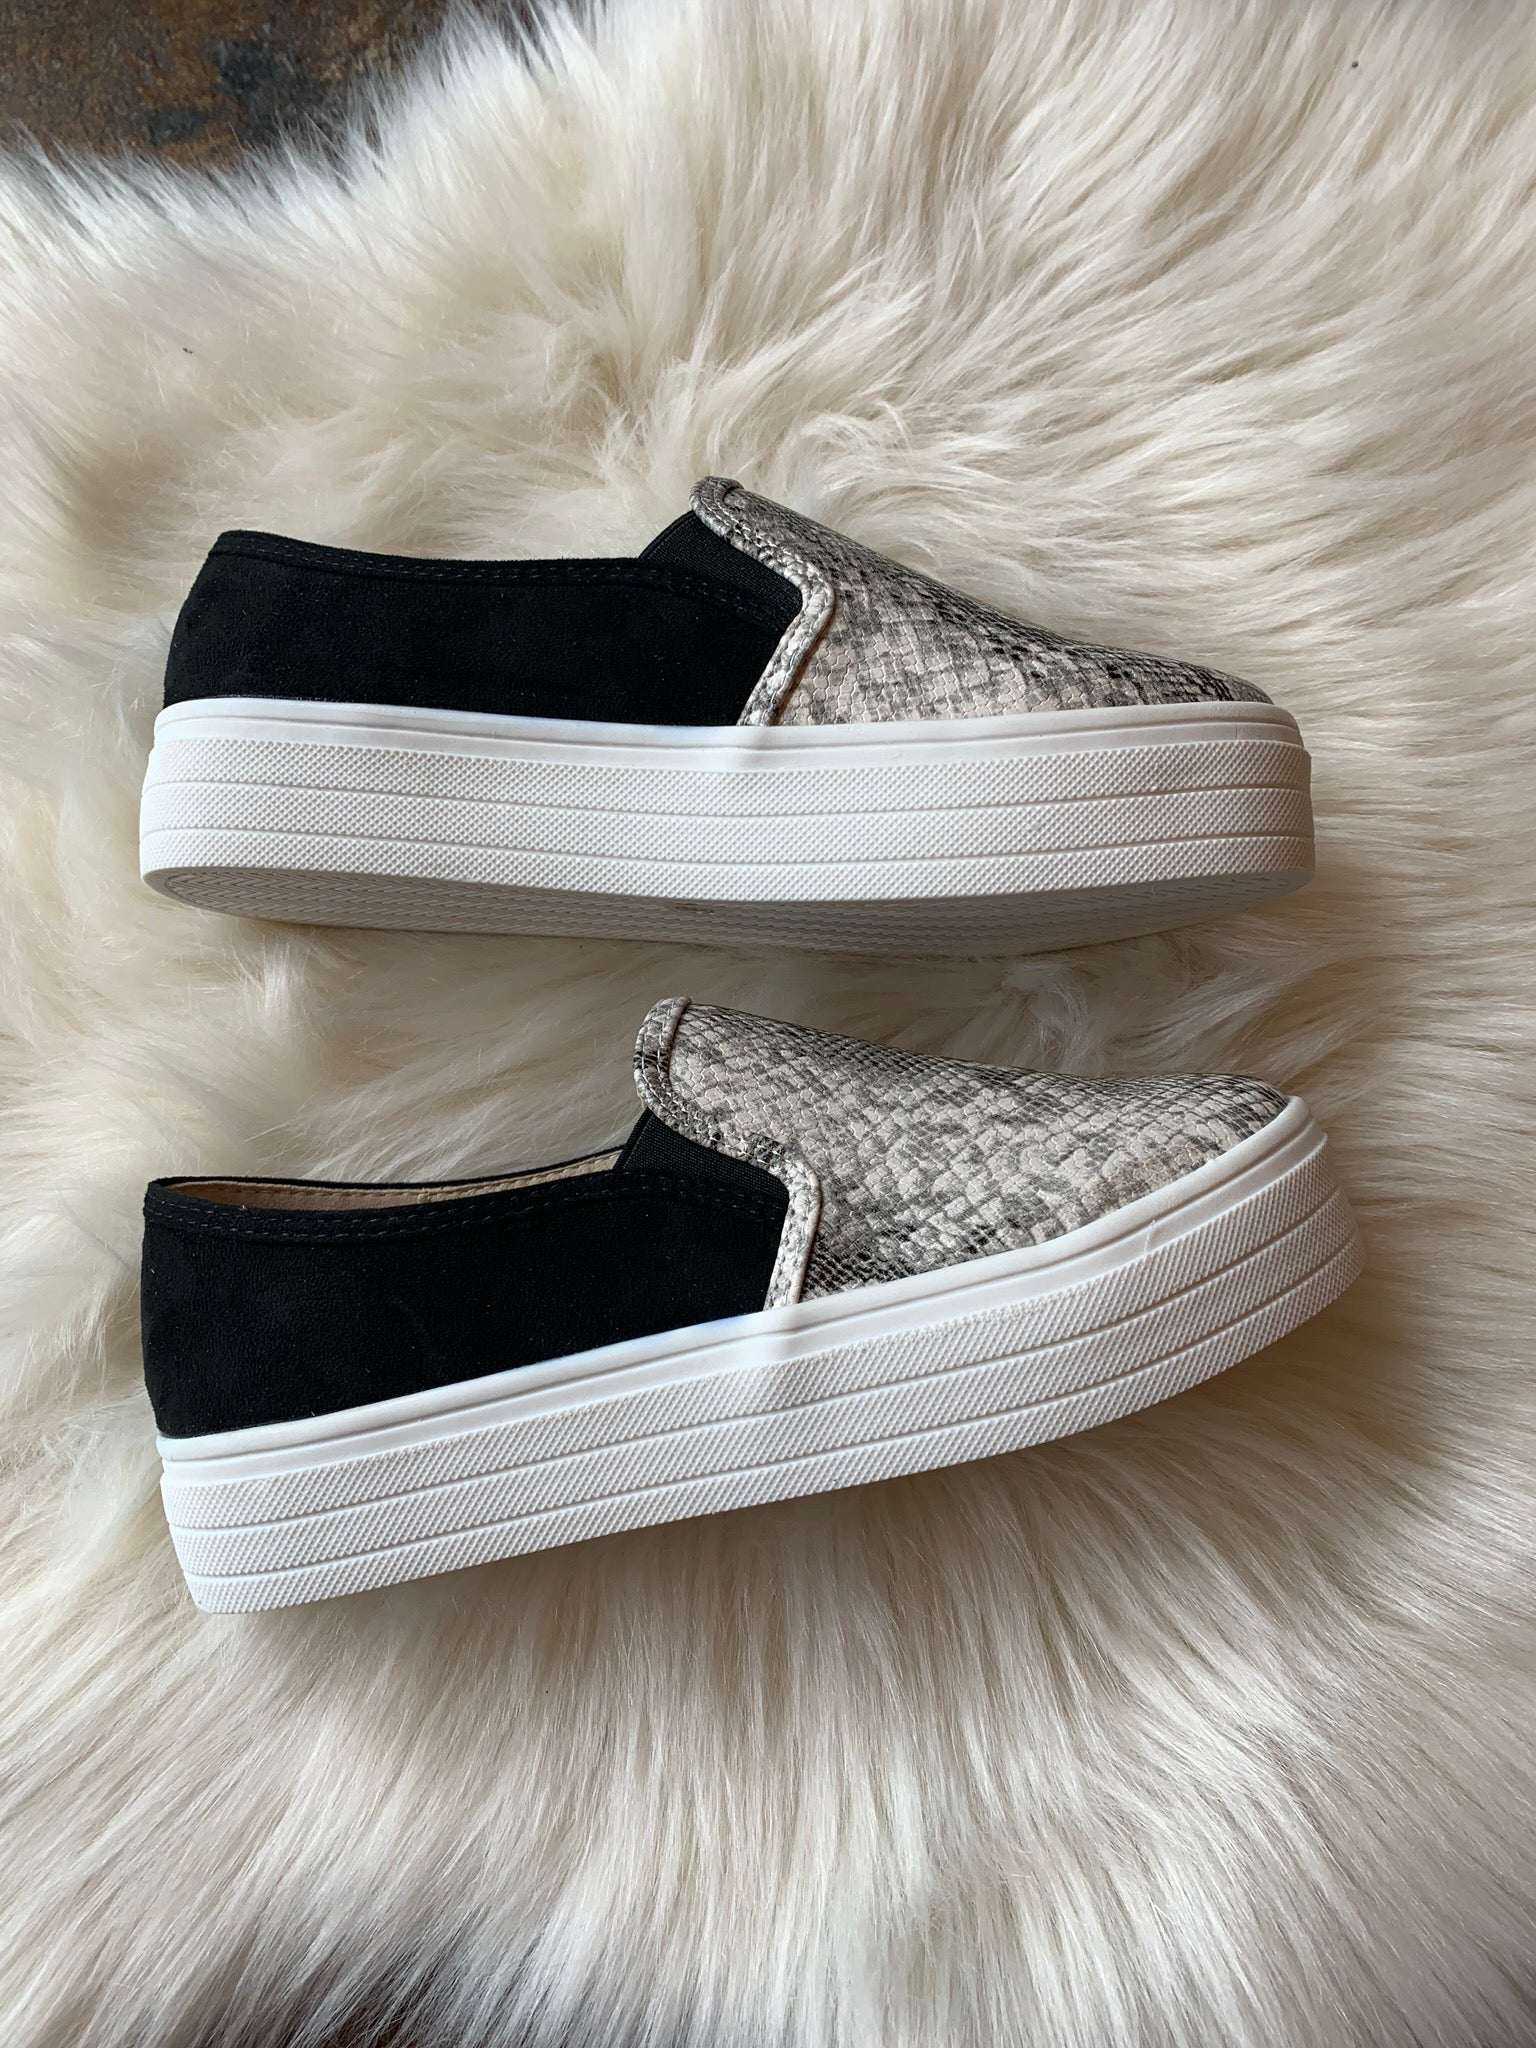 Free To Roam Platform Slip Ons - Snake Skin Shoes